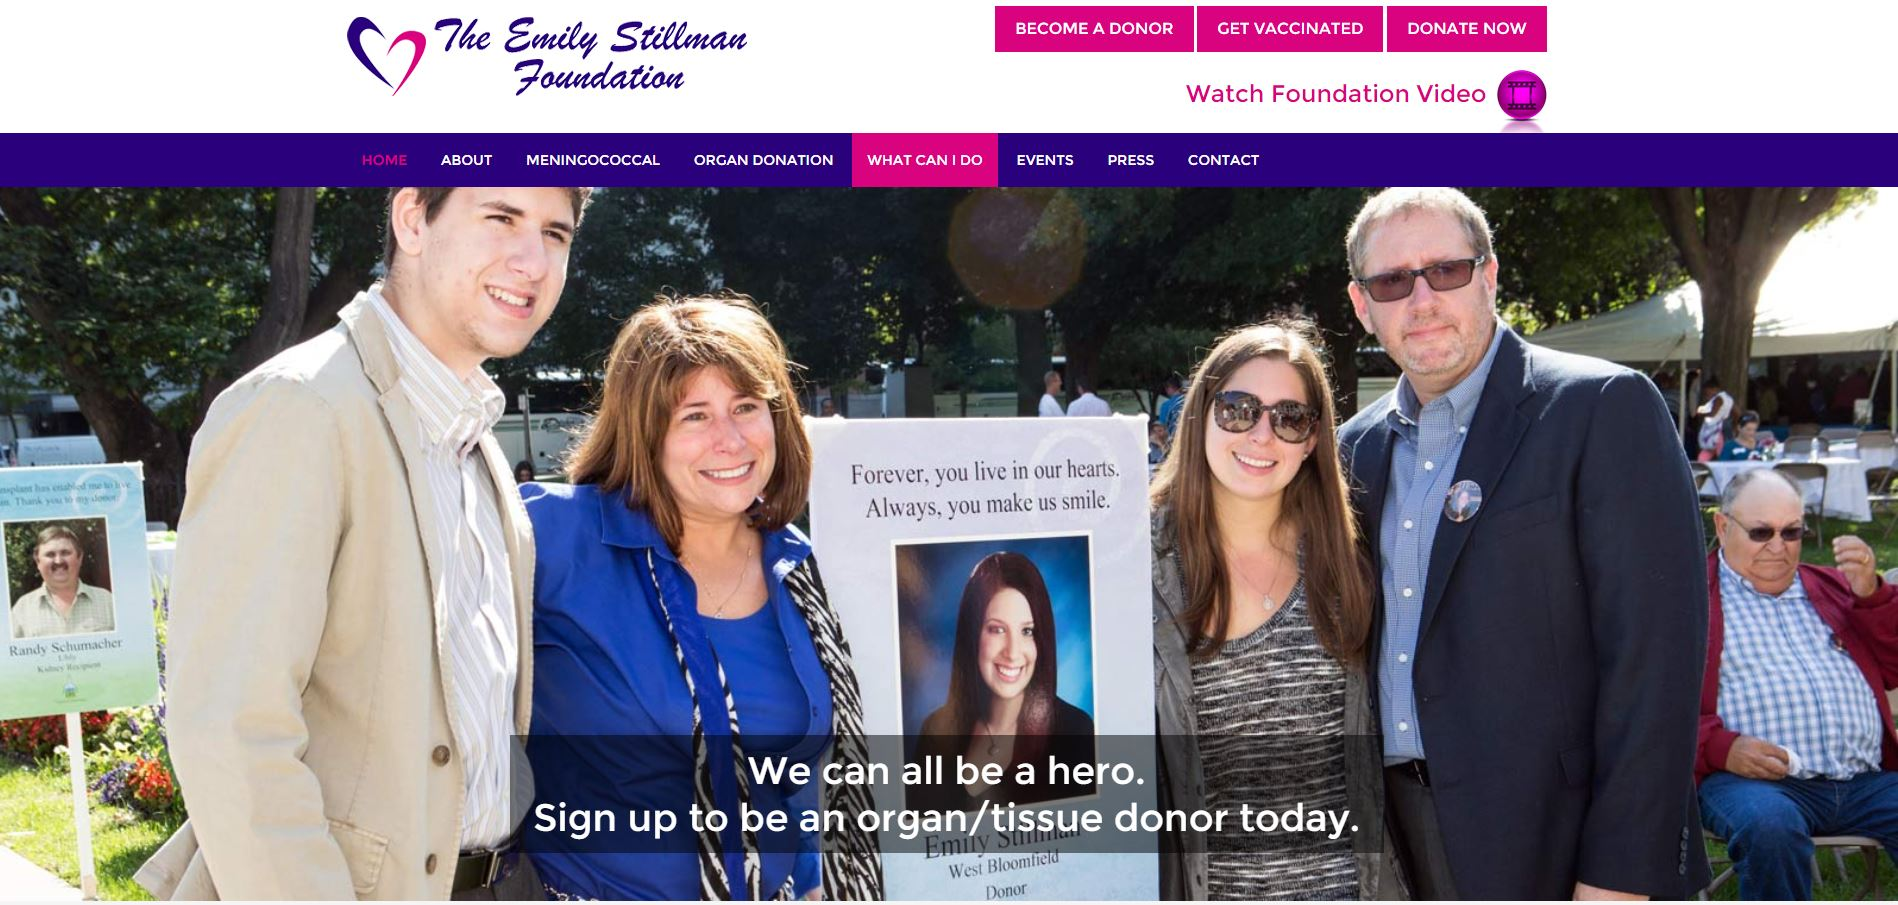 The Emily Stillman Foundation Website Redesign and Rebuild